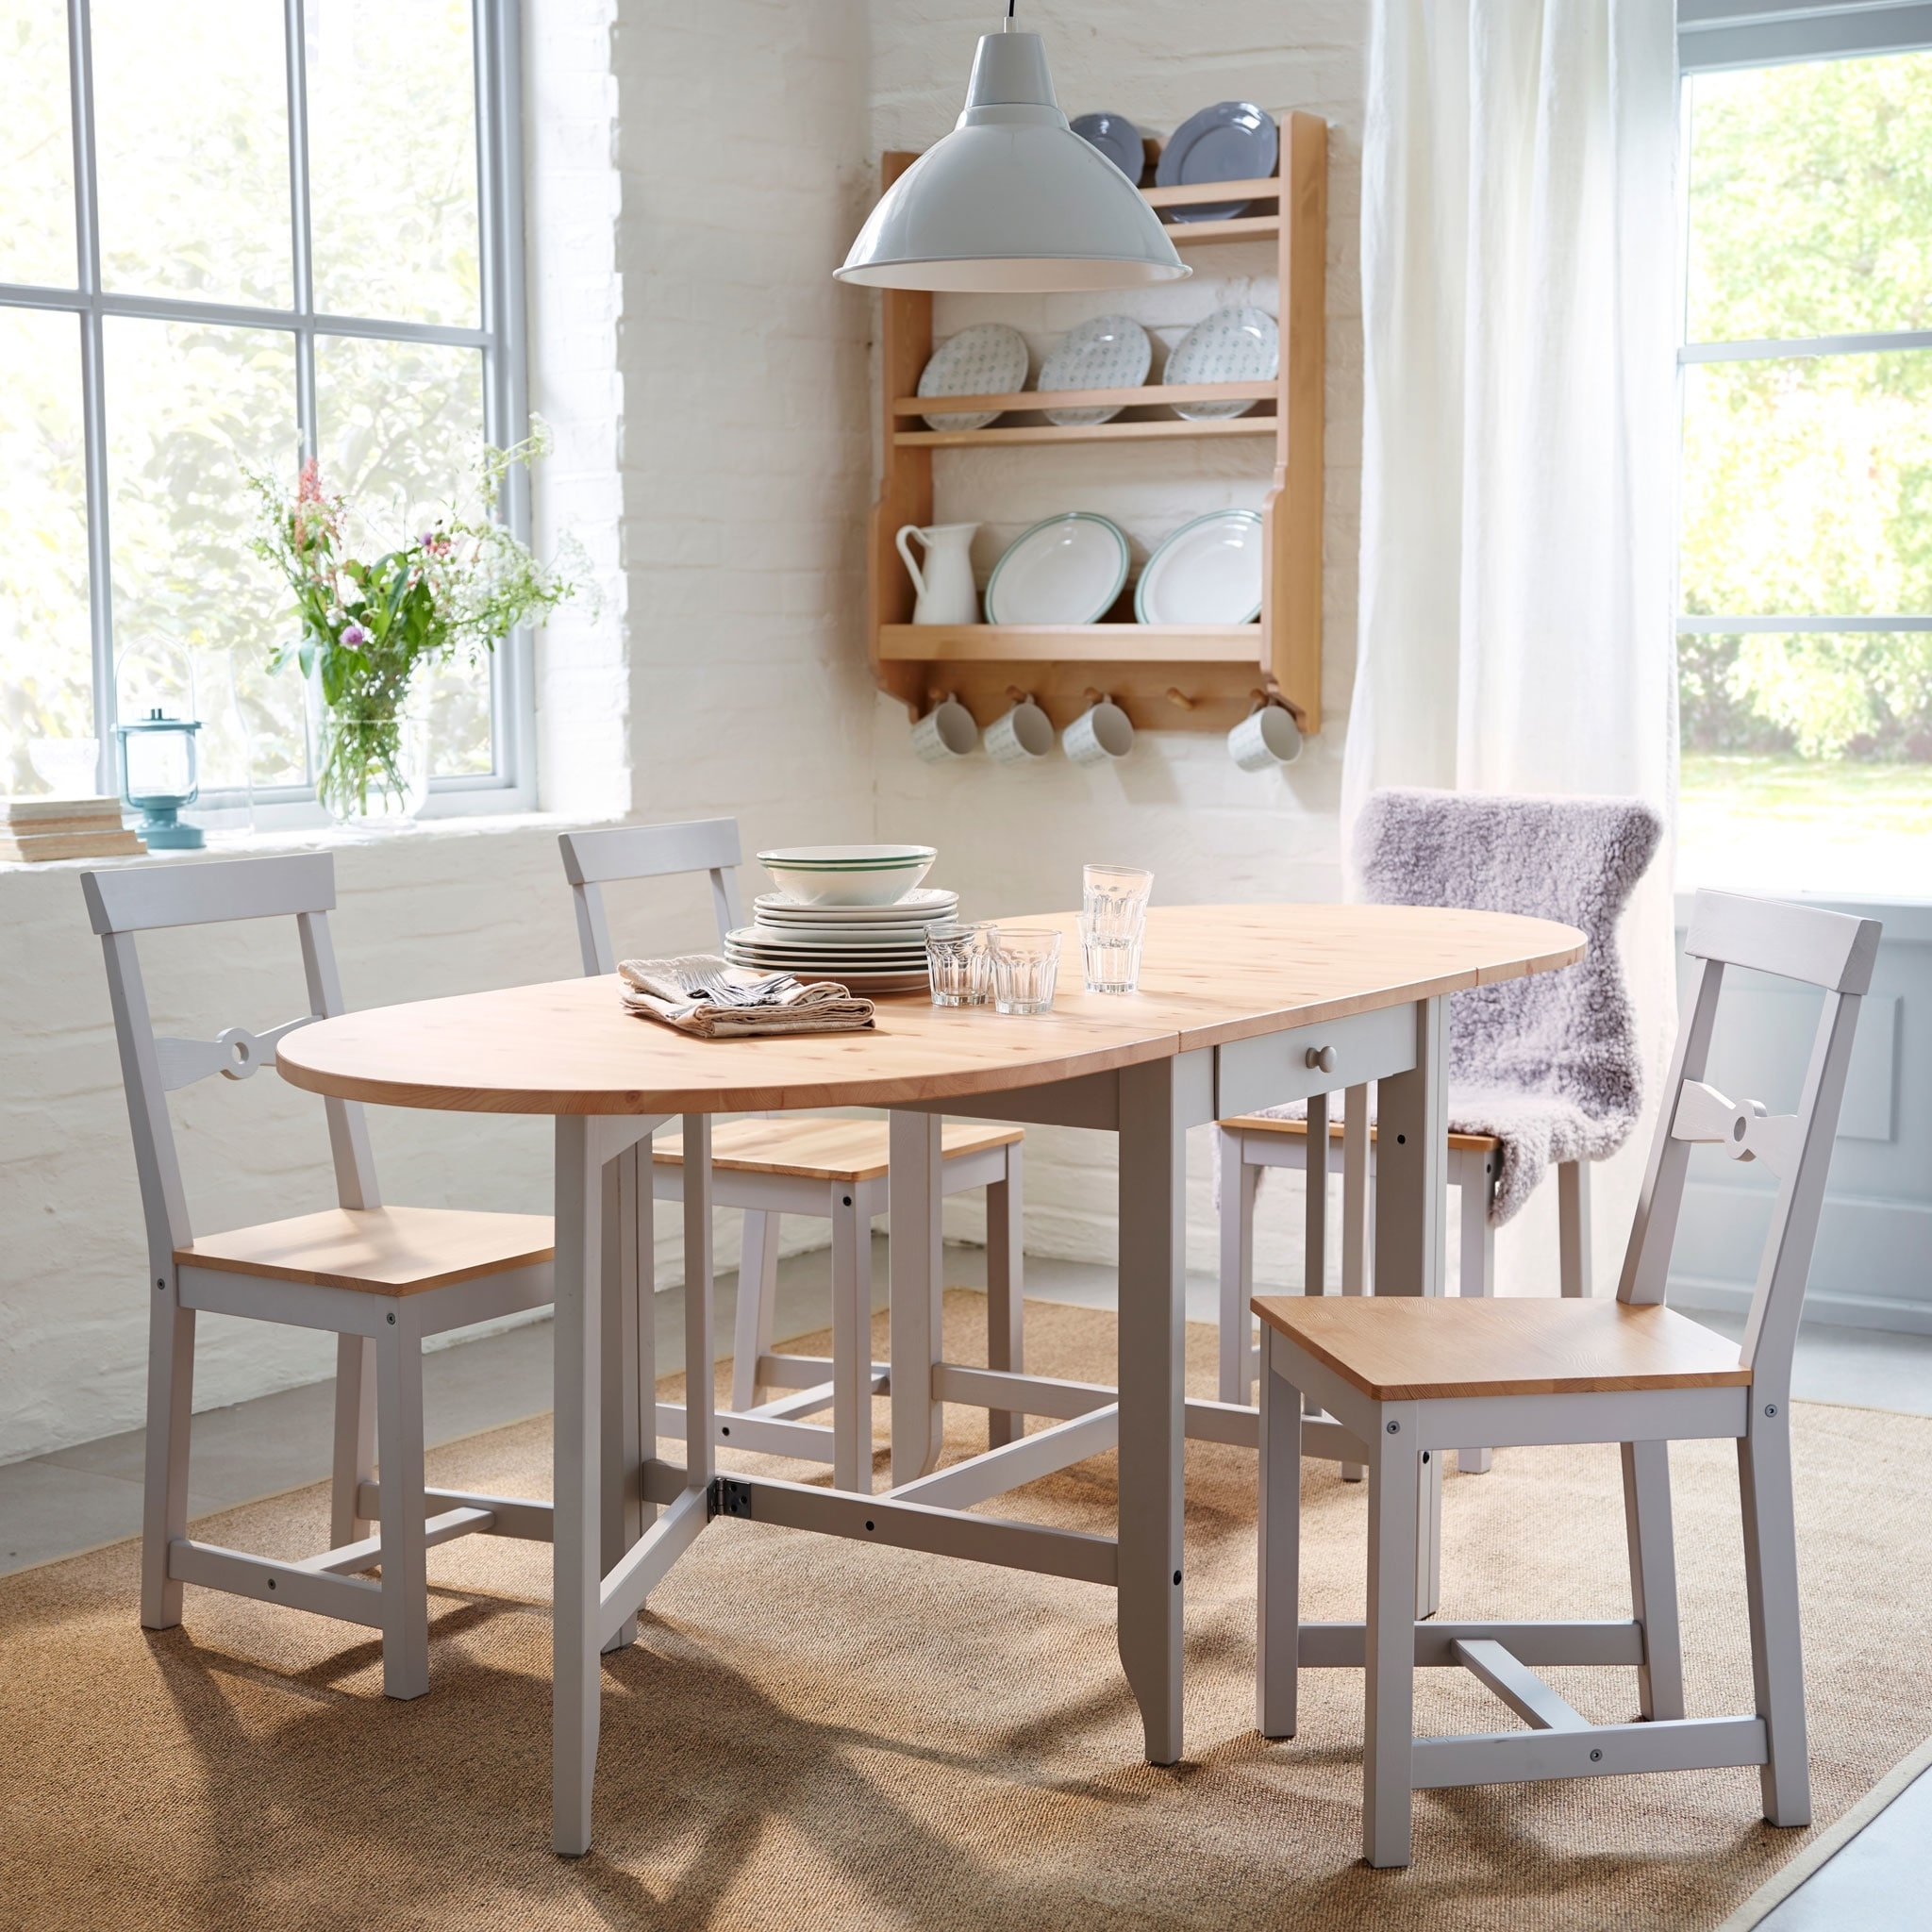 Dining Room Tables And Chairs In Well Known Dining Room Furniture & Ideas (View 7 of 25)